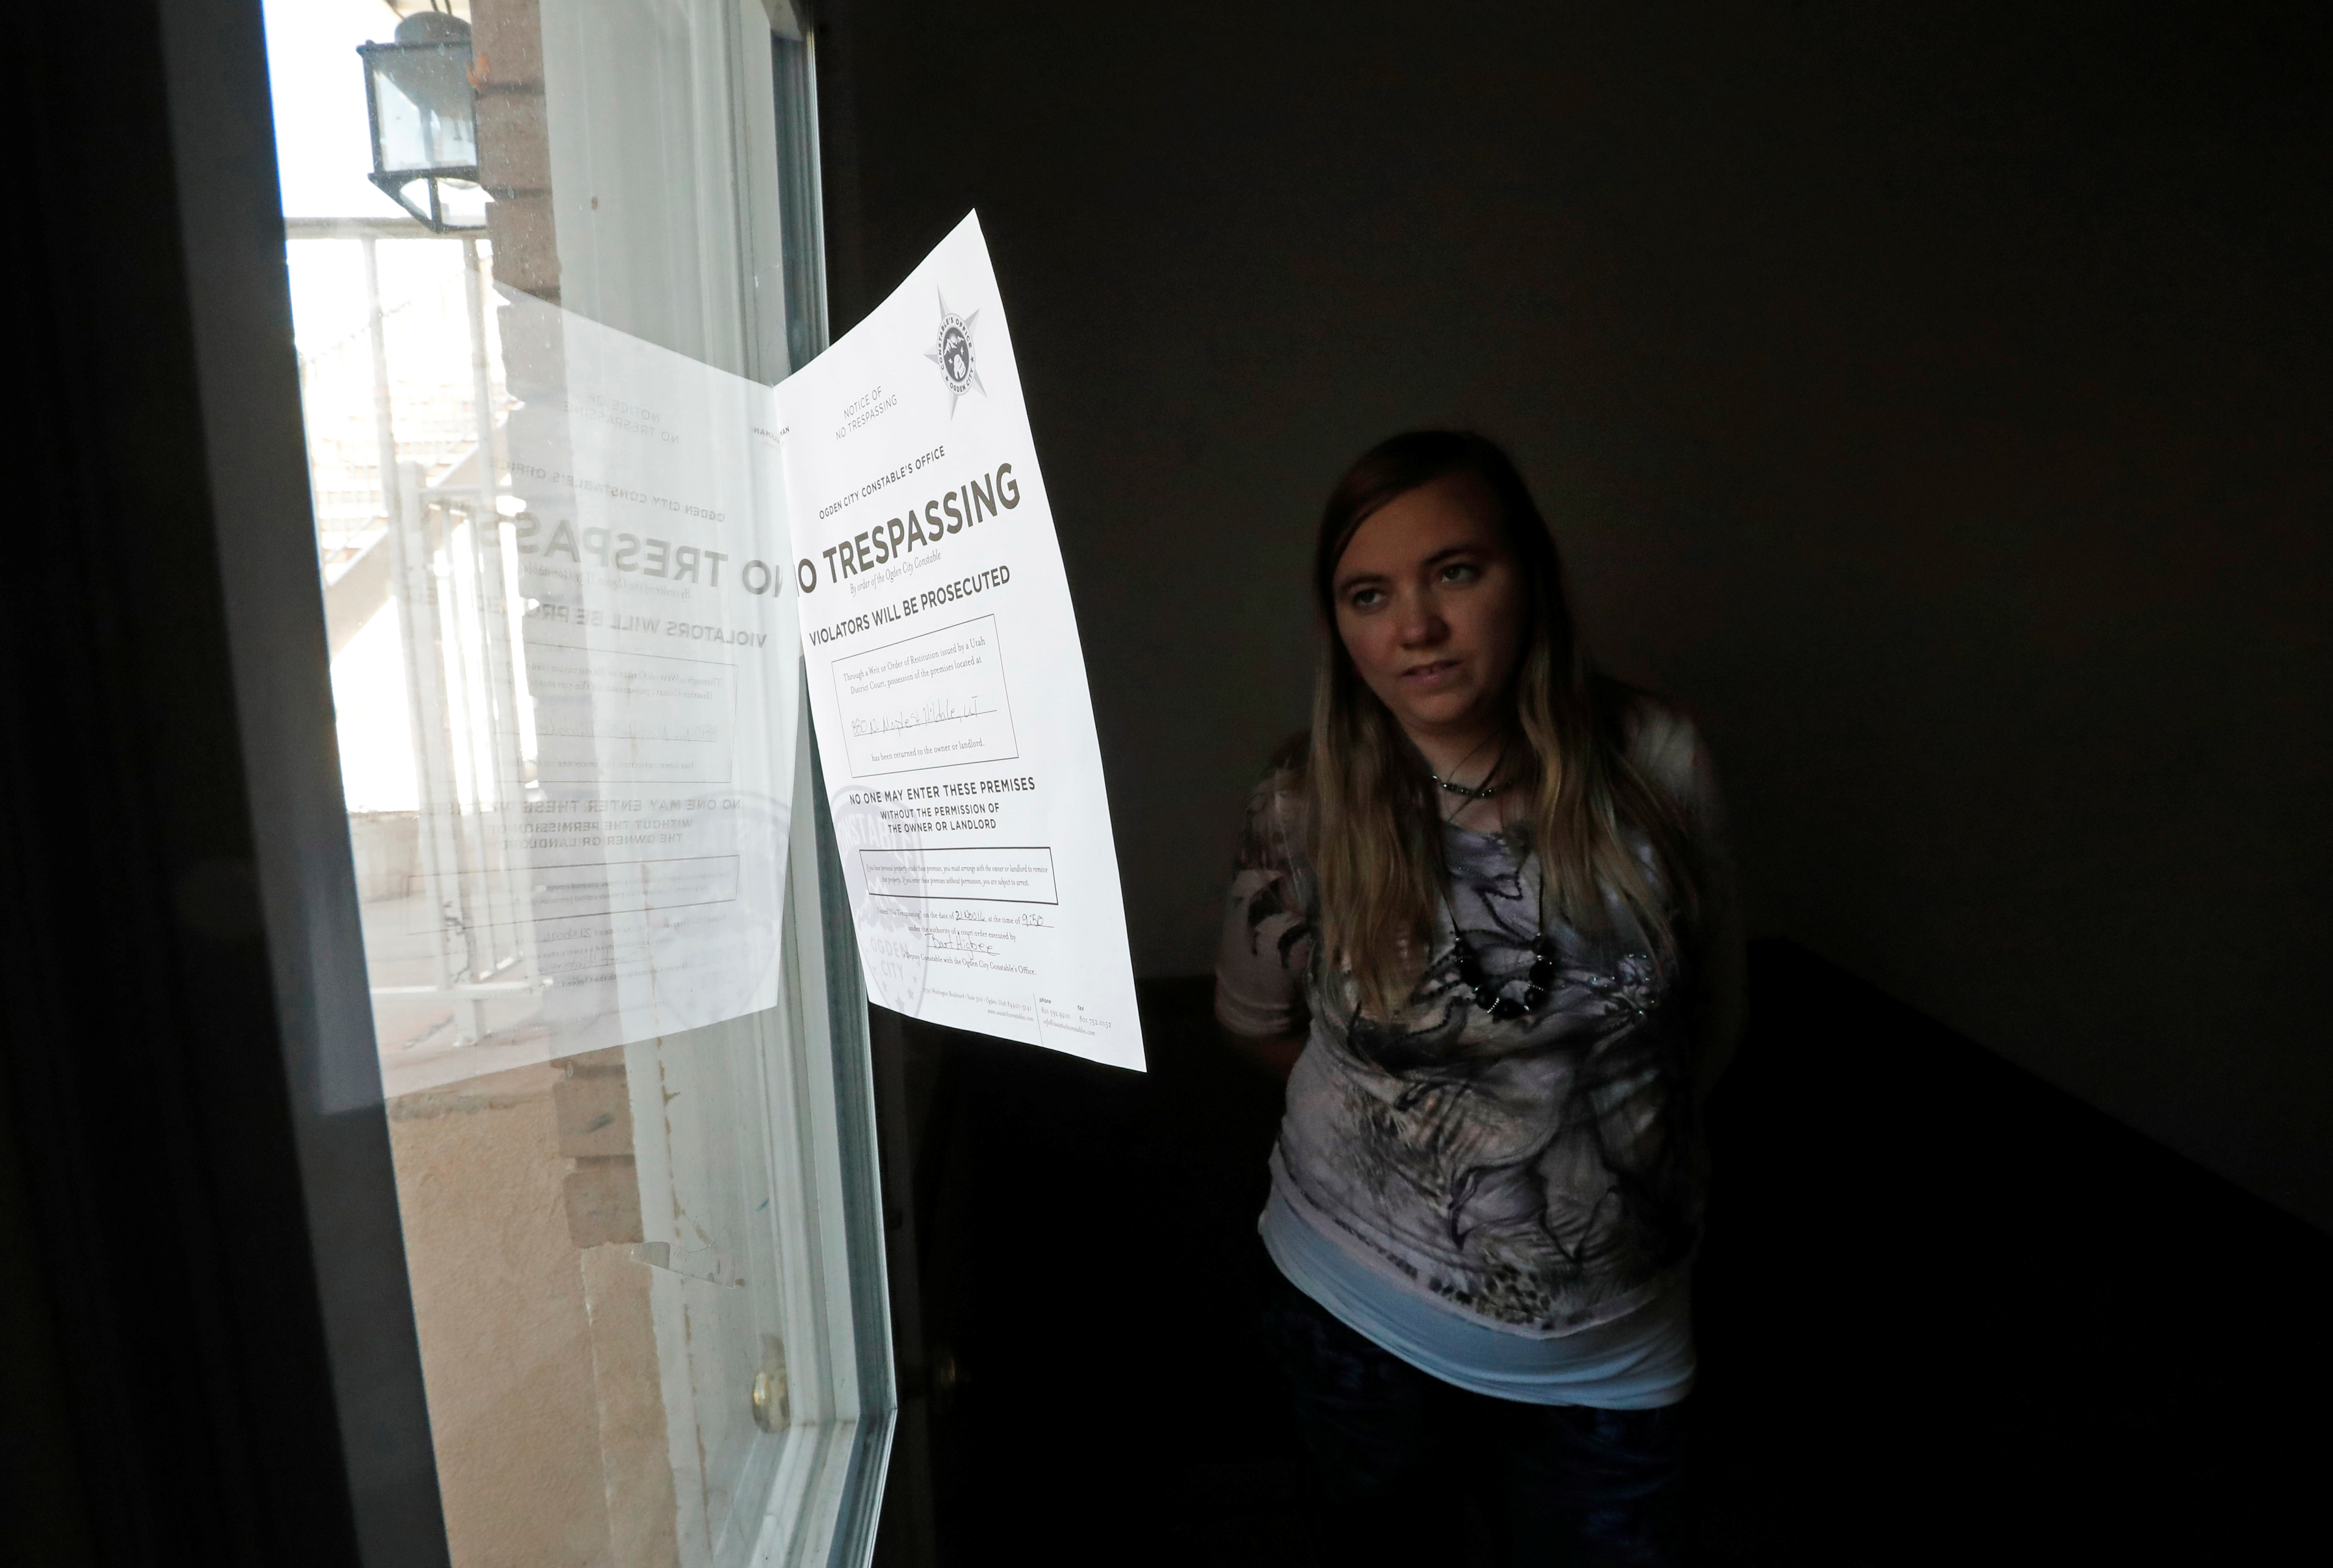 Briell Decker, the 65th wife of jailed Fundamentalist Church of Jesus Christ of Latter-Day Saints (FLDS Church) polygamist prophet leader Warren Jeffs, looks at an eviction notice on the window at his compound, where he lived for several years, in Hildale, Utah, U.S., May 3, 2017. She is in the process of purchasing the compound. Picture taken May 3, 2017.  REUTERS/George Frey